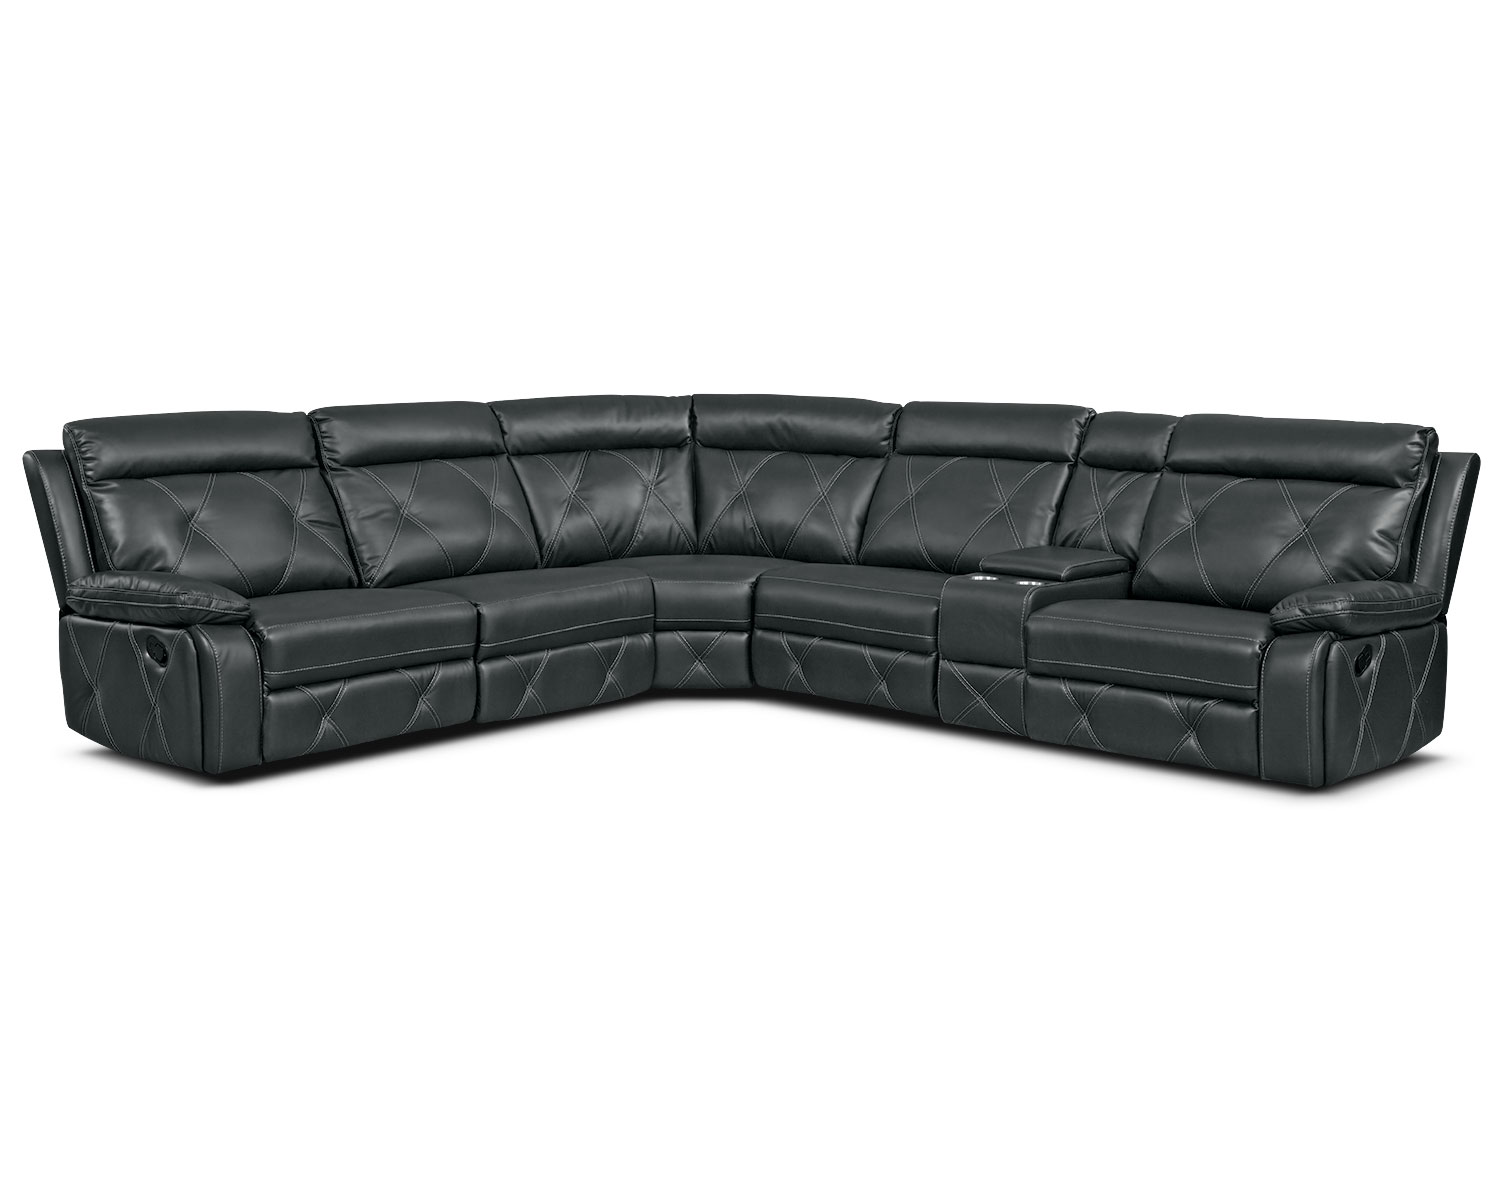 The Dante Charcoal Reclining Collection